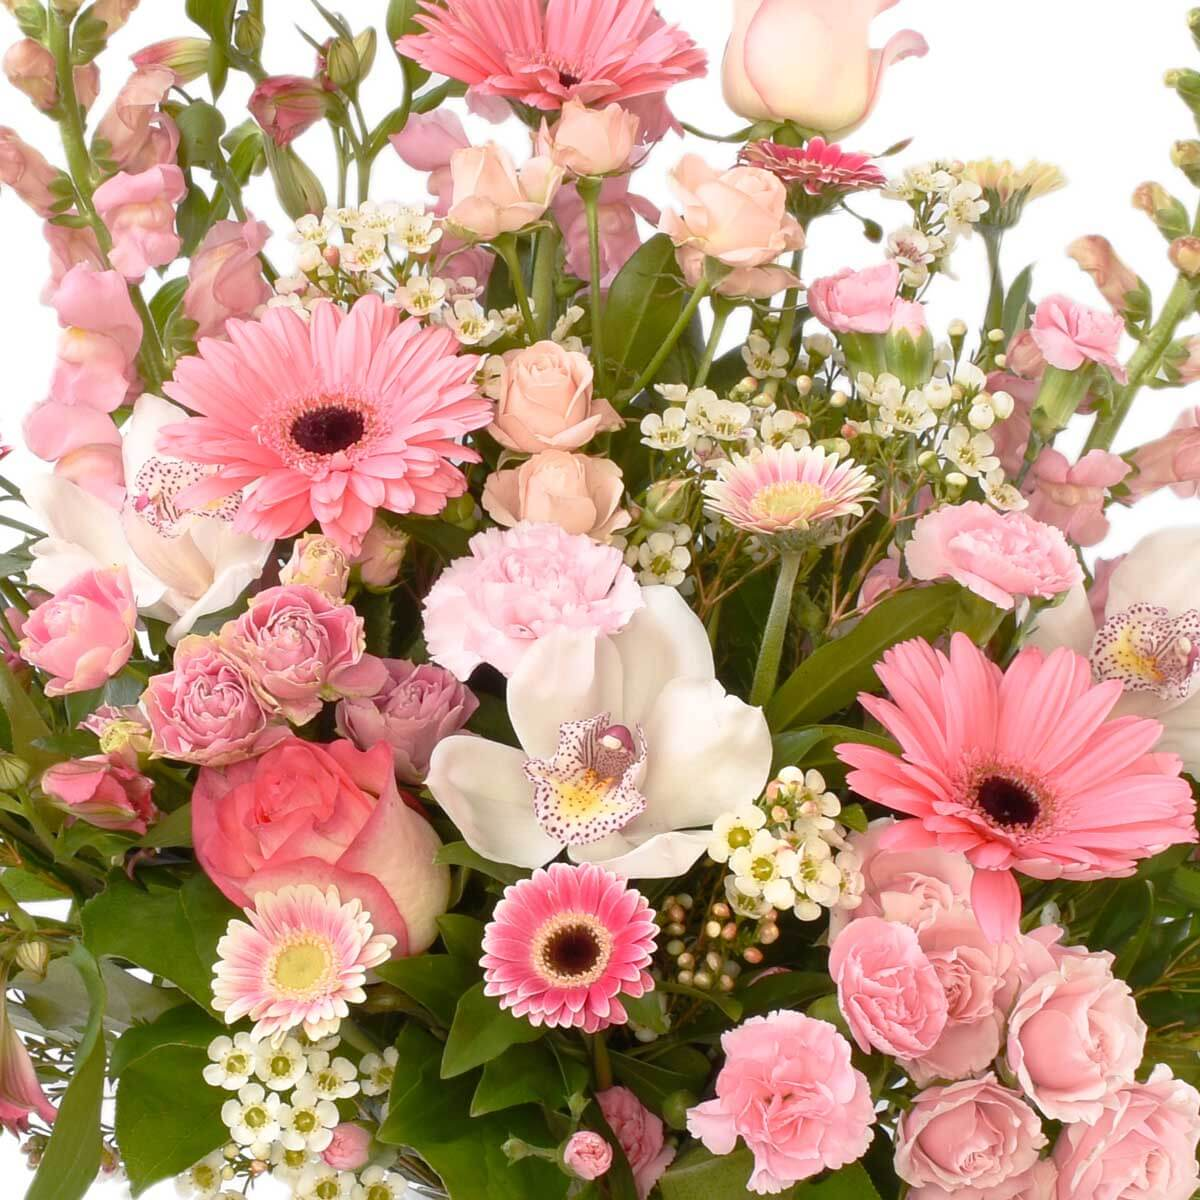 Best Flowers for Mom | Vancouver Florist | Adele Rae